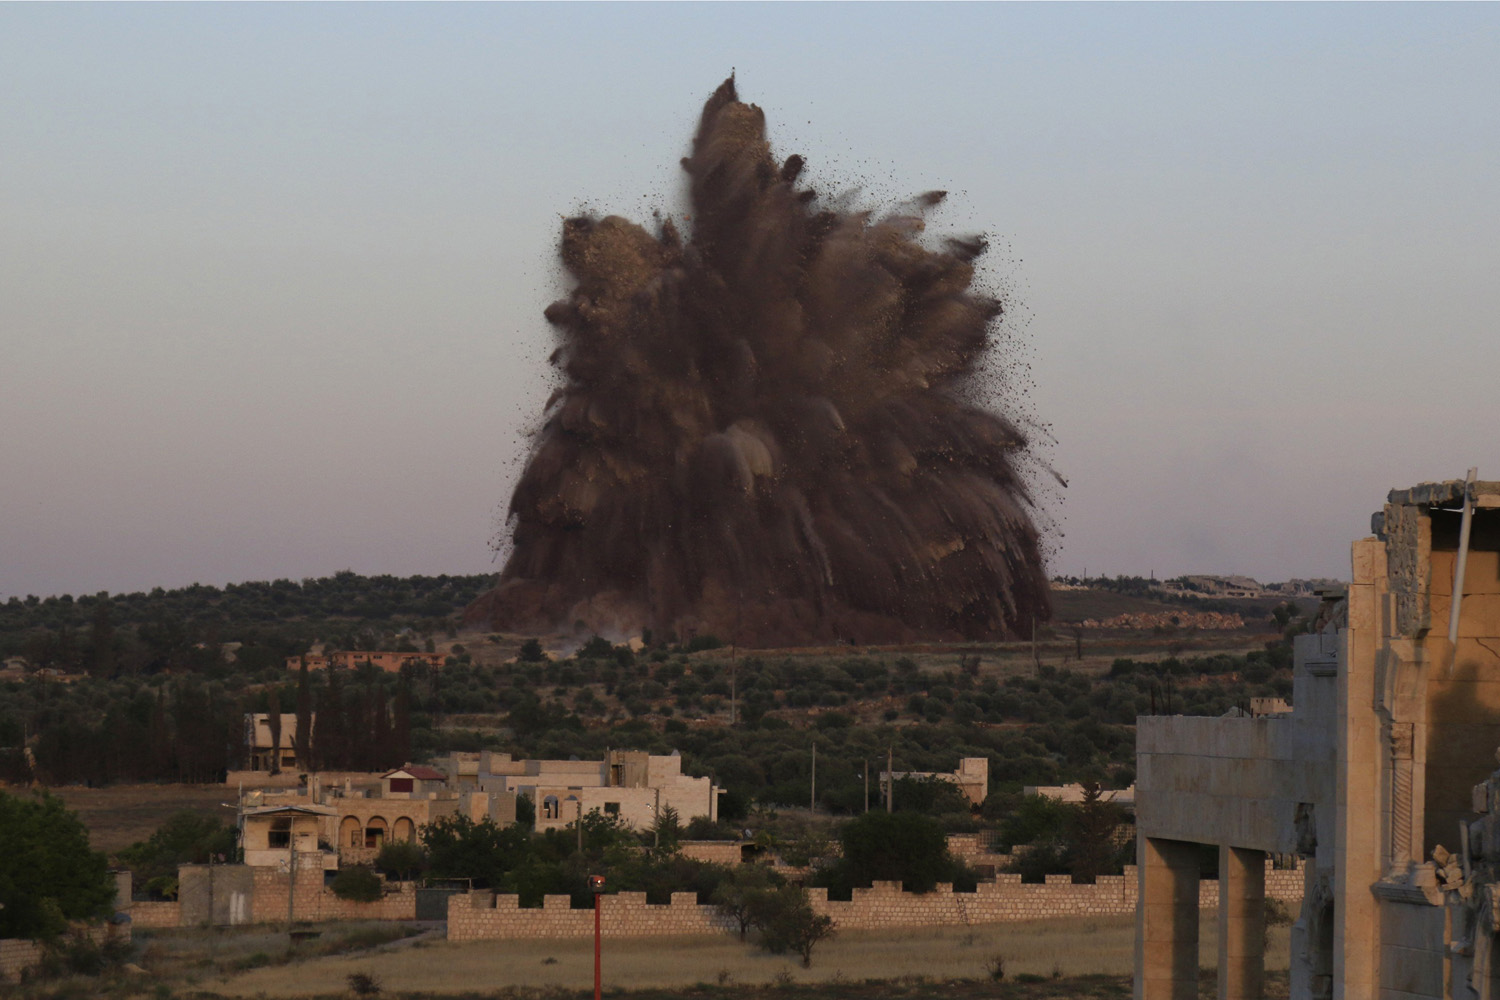 May 14, 2014. Debris rises during what rebel fighters said was an operation in which they blew up a tunnel targeting the regime's al-Sawadi checkpoint, in Idlib province.